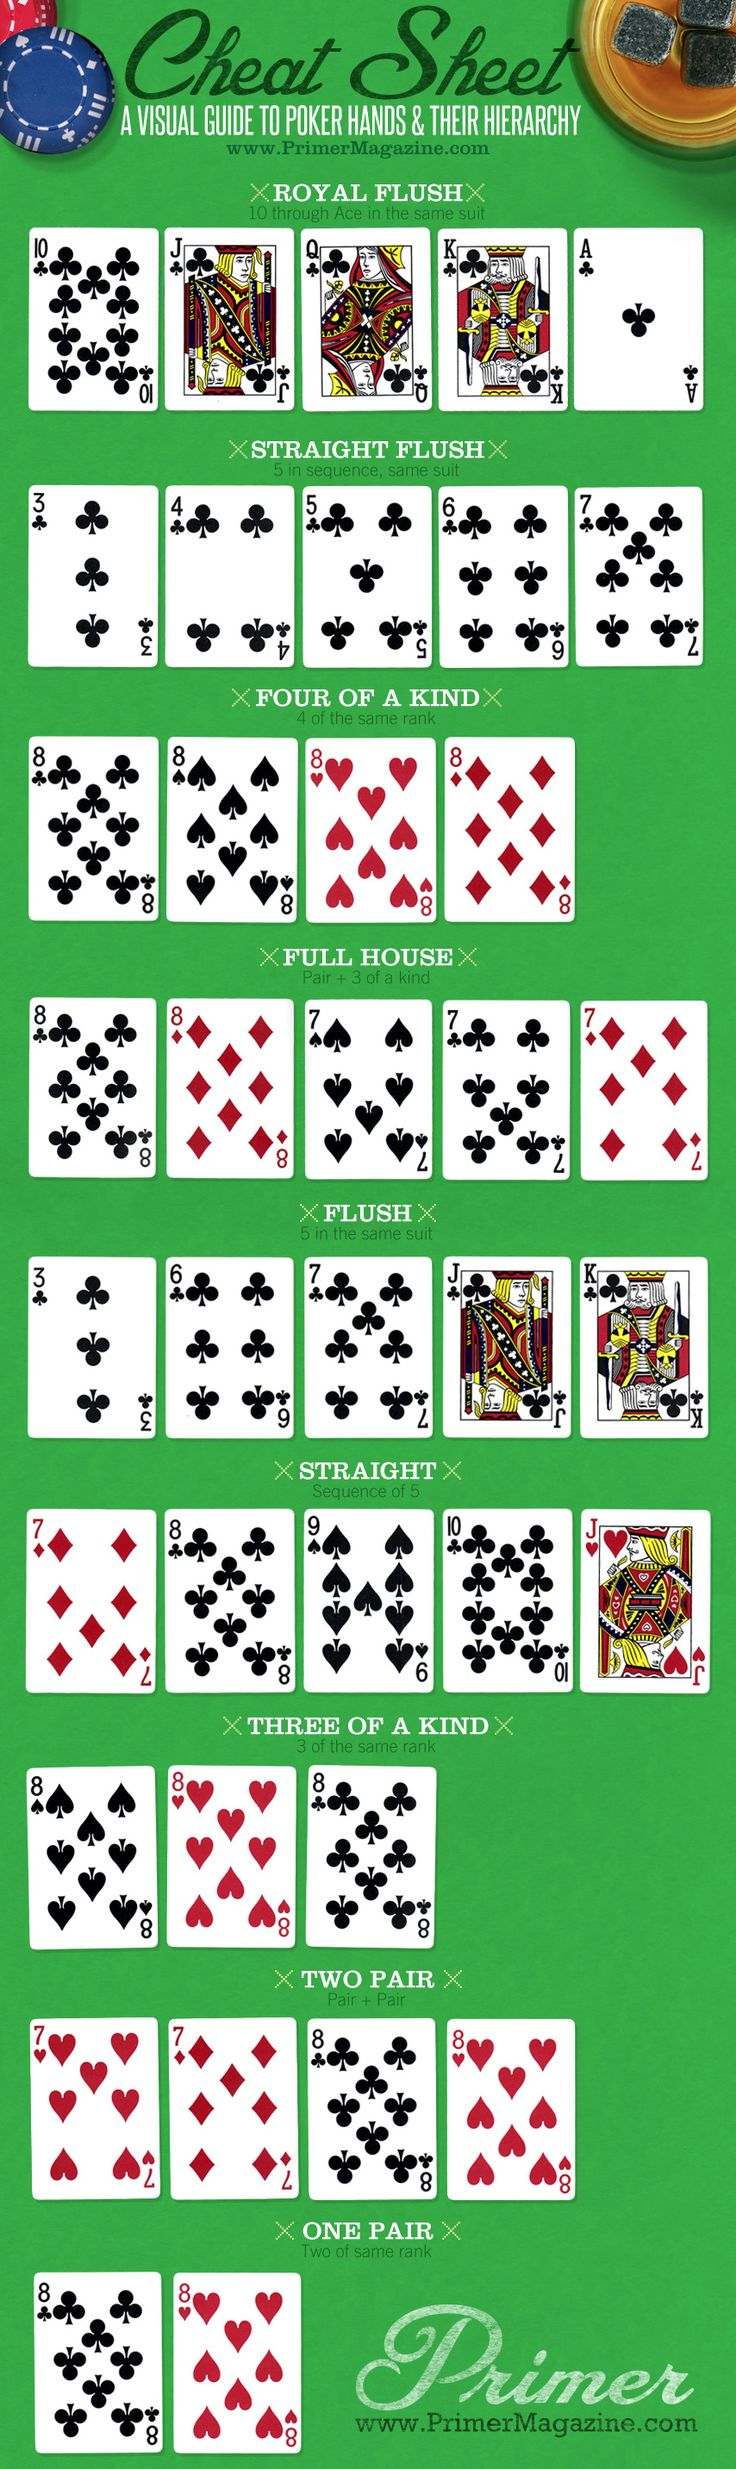 Hierarchy of Poker Hands graphic!   Pin for the next time I am invited to a boys (or girls) poker game